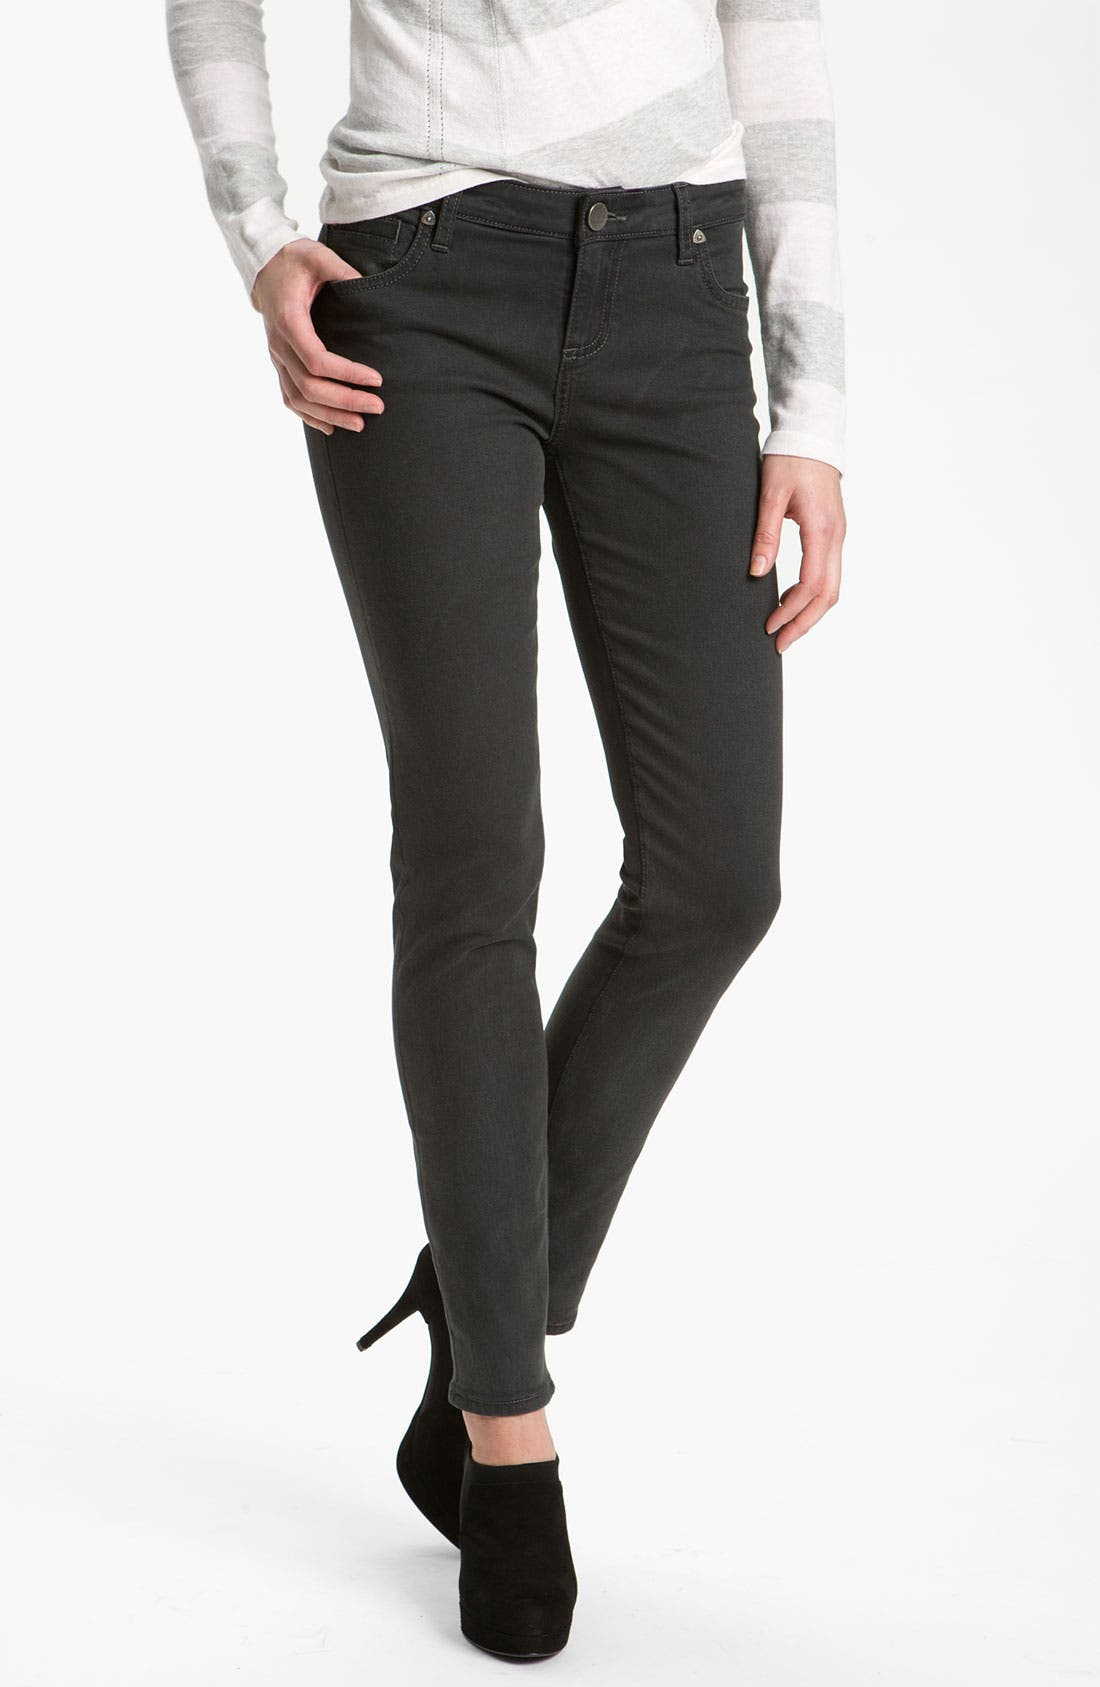 Main Image - KUT from the Kloth 'Diana' Skinny Jeans (Graceful Wash)